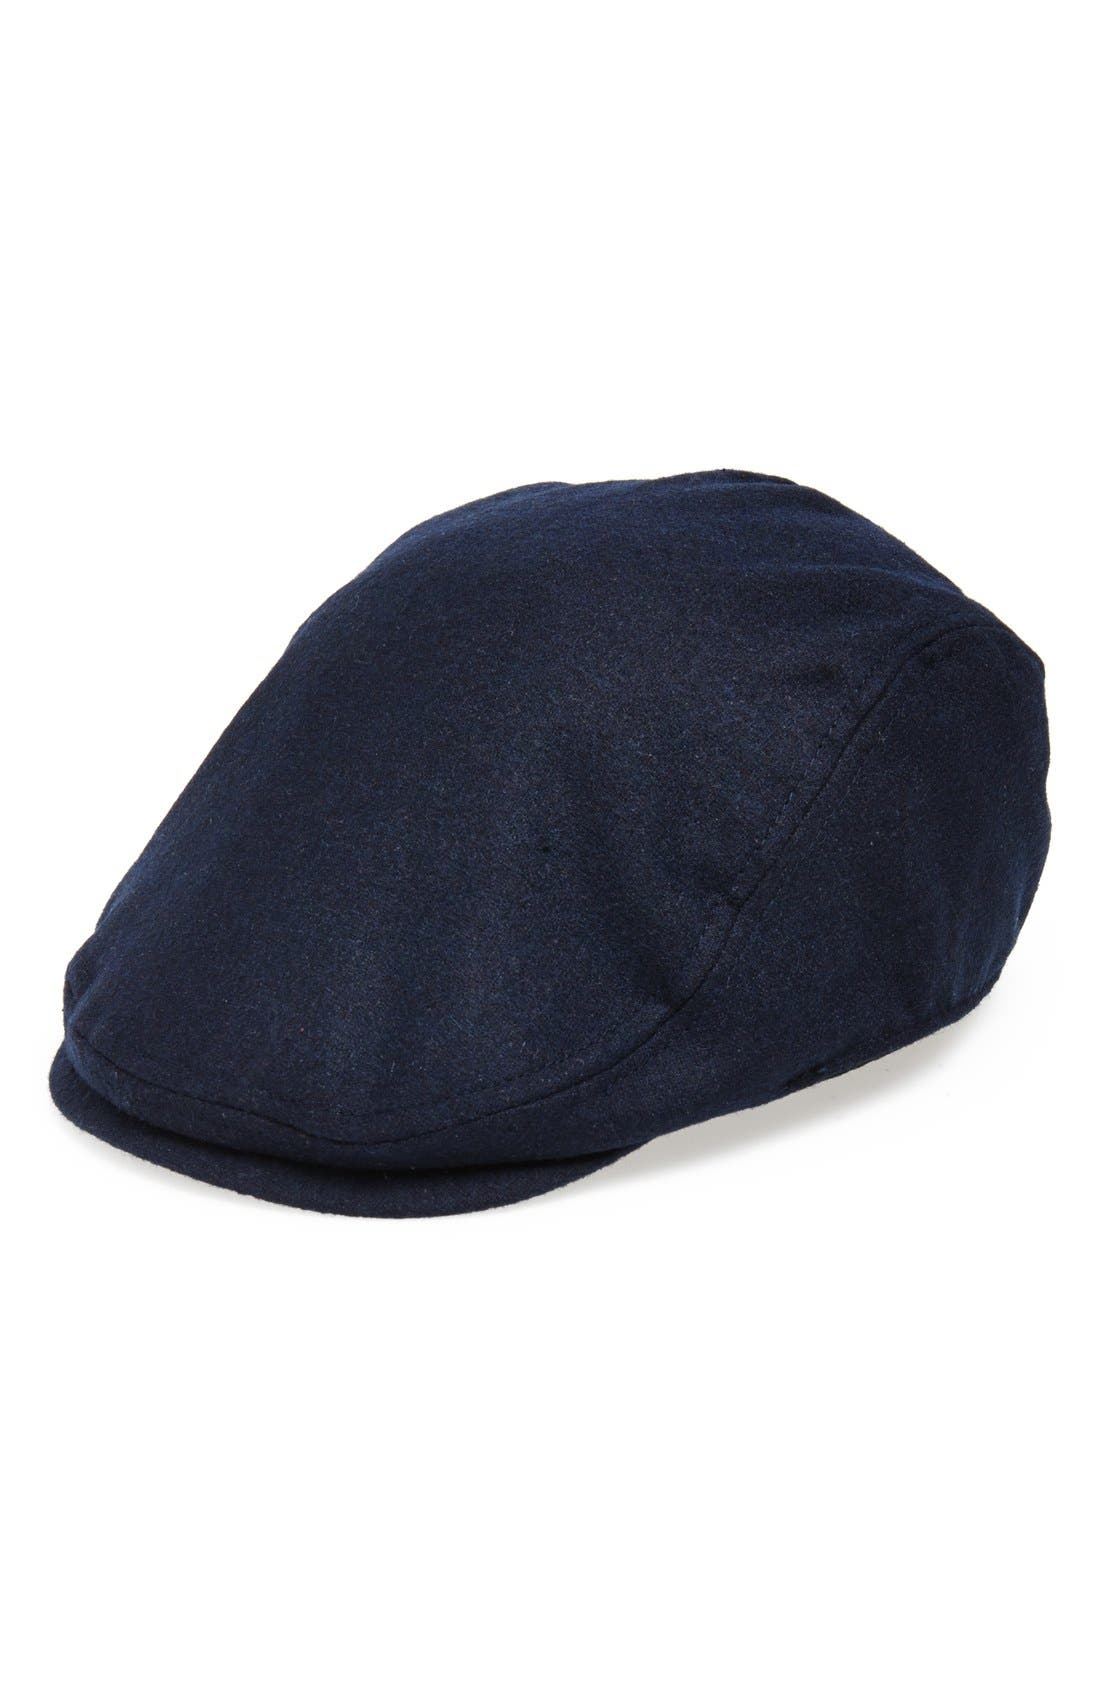 Glory Hats by Goorin 'Mikey' Driving Cap,                         Main,                         color, 410